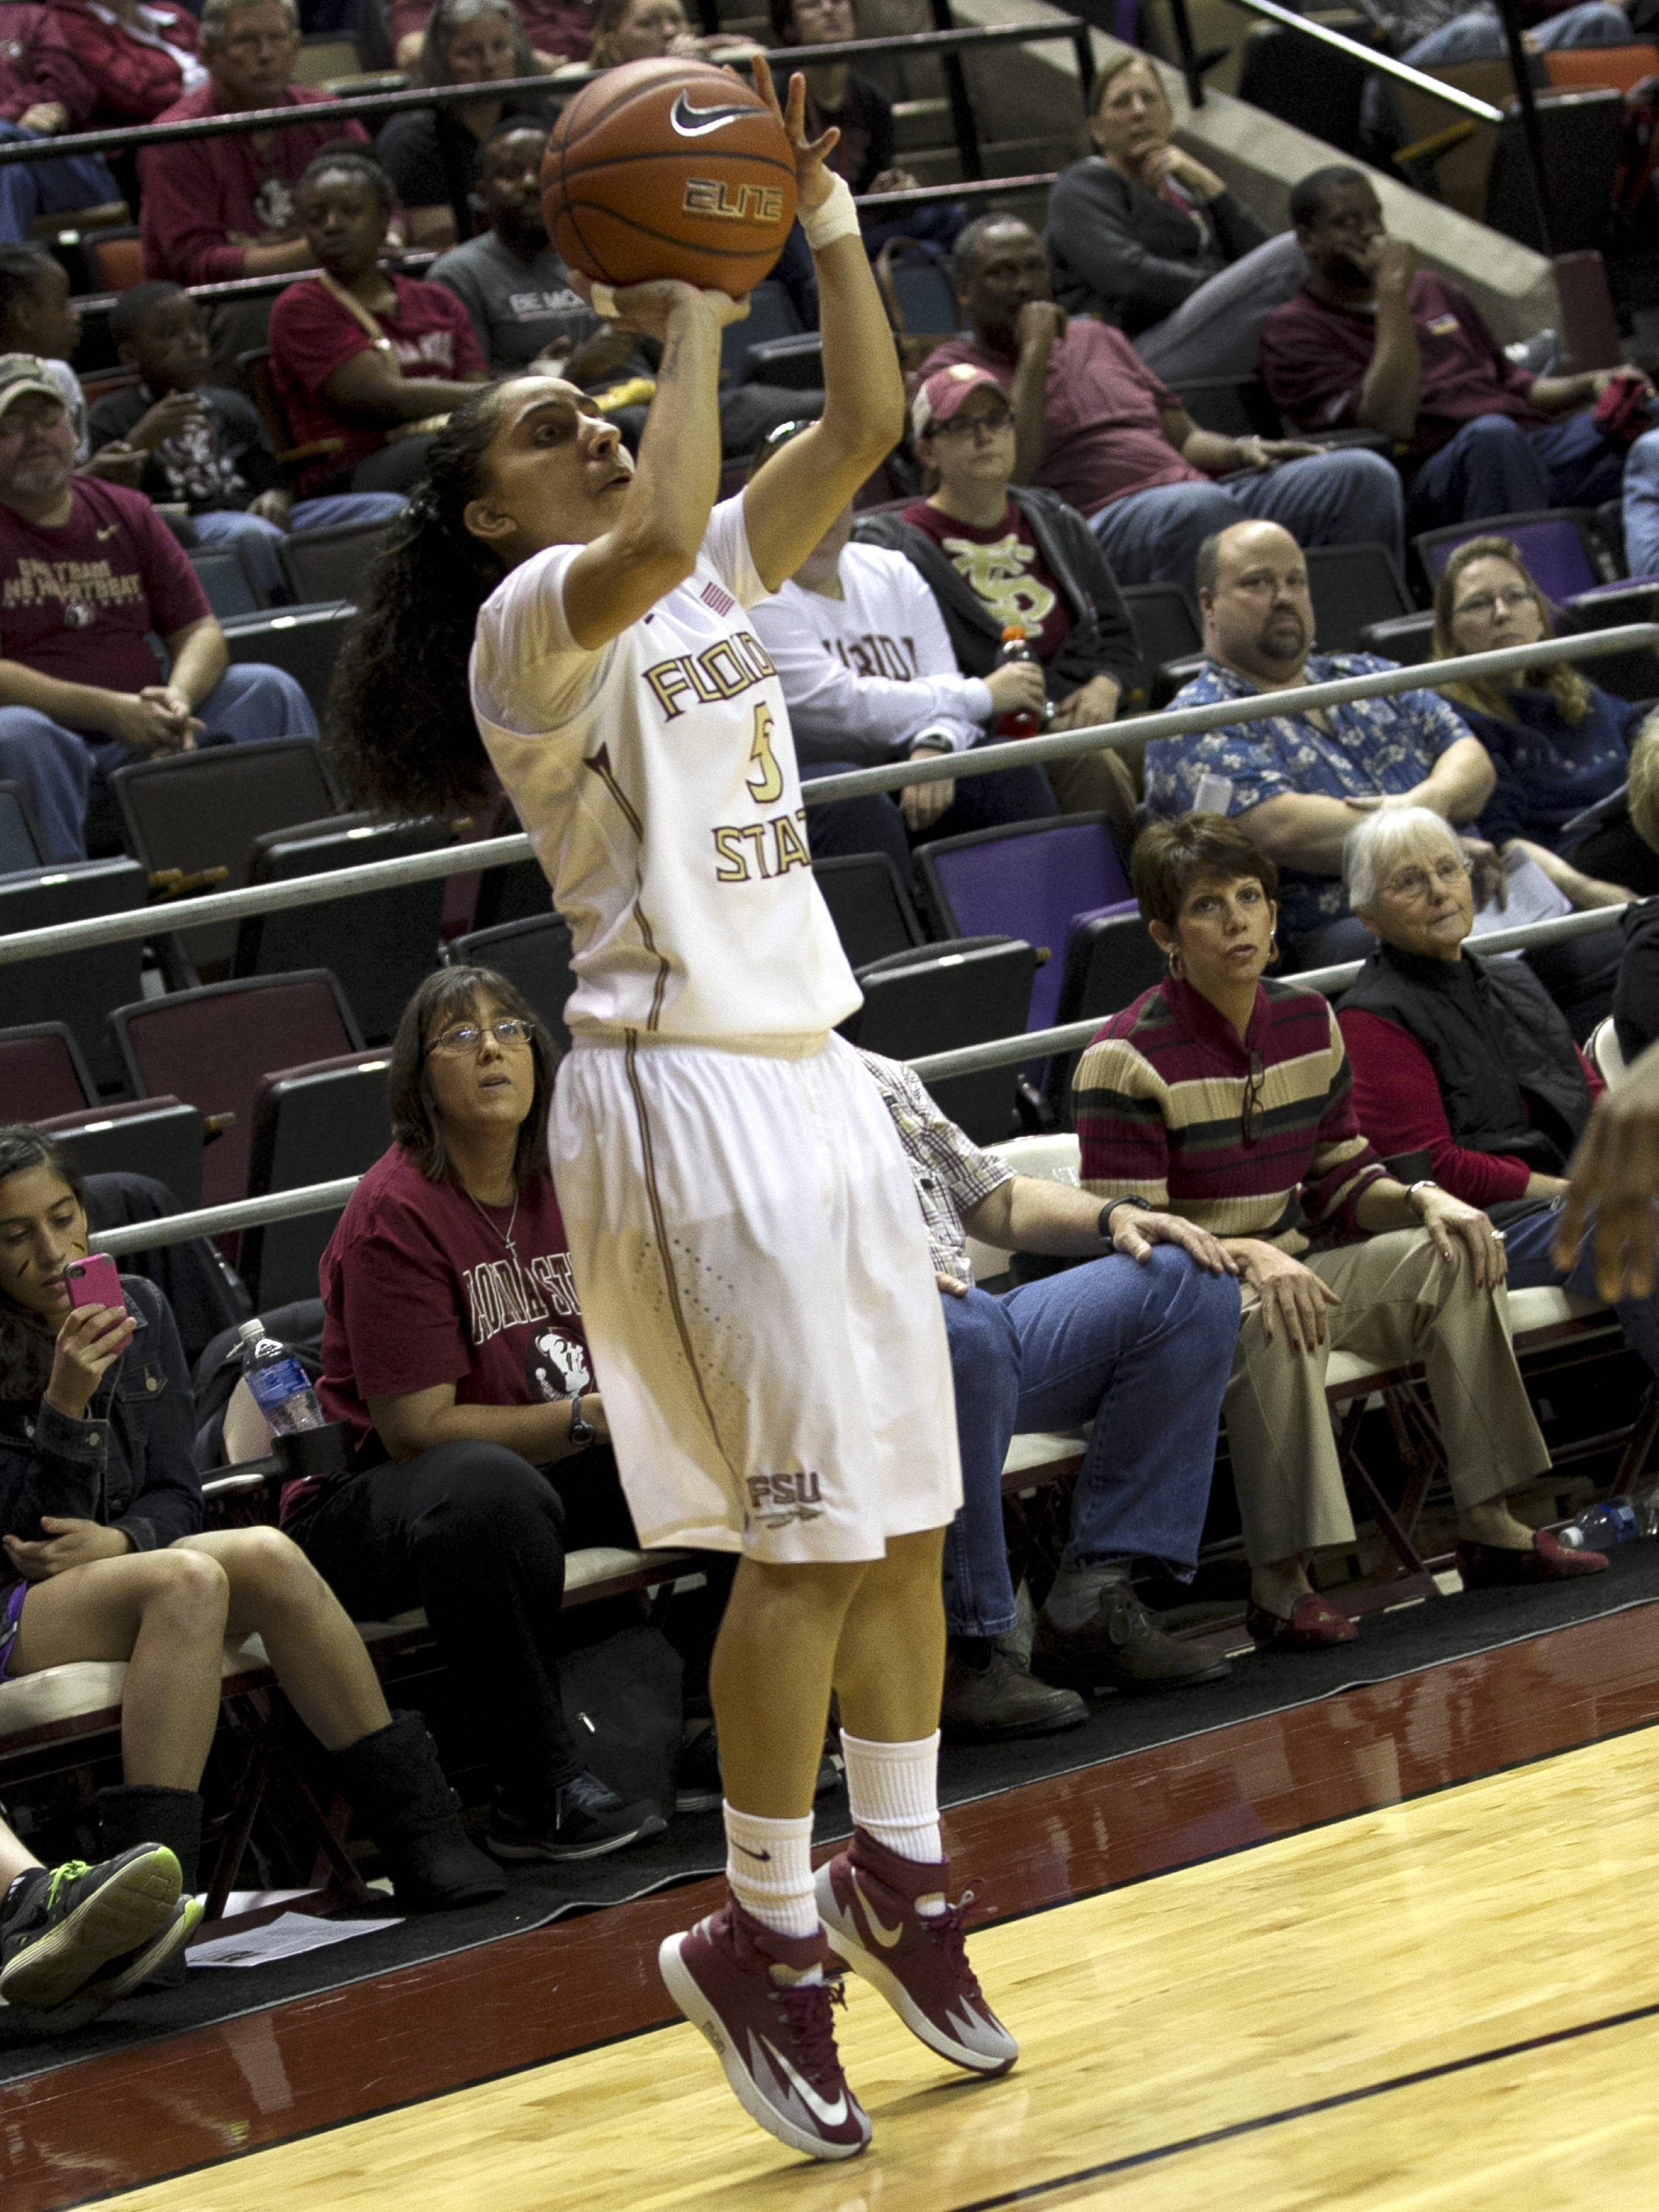 Cheetah Delgado (5) just starting her release for a three, FSU vs Miami, 2-16-14, (Photo's by Steve Musco)